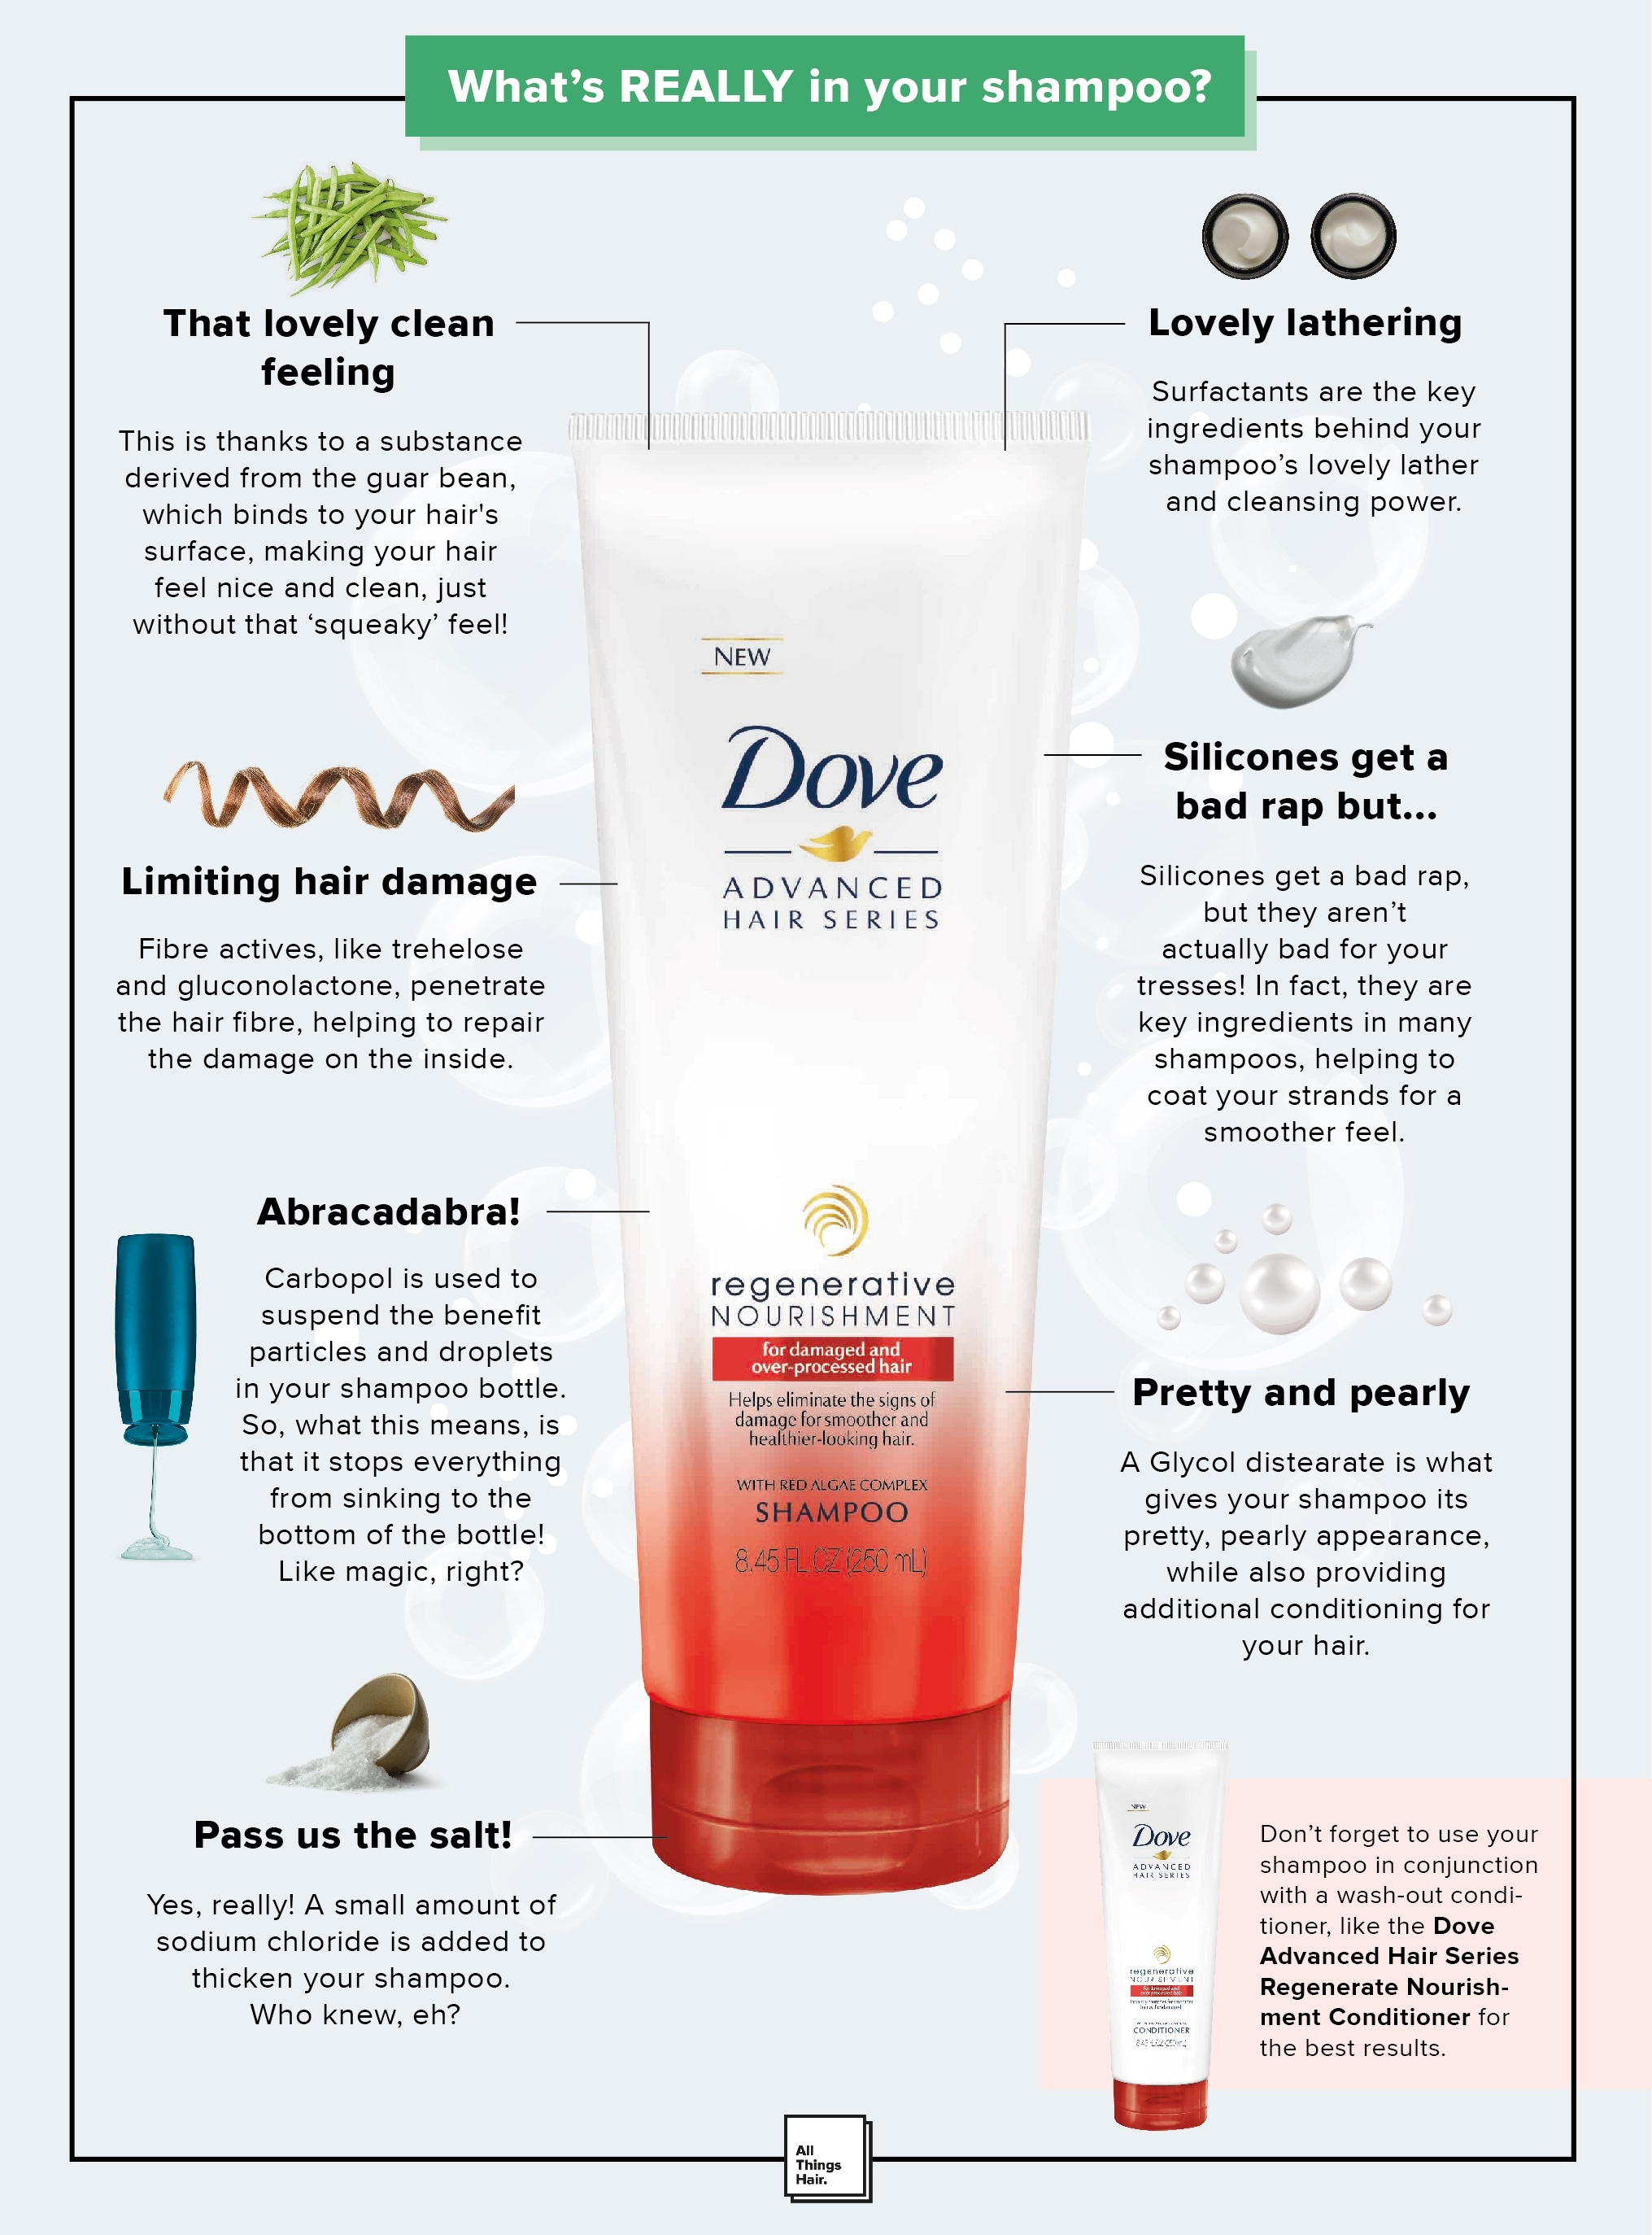 Shampoo: All Things Hair - IMAGE - what's really in your shampoo infographic